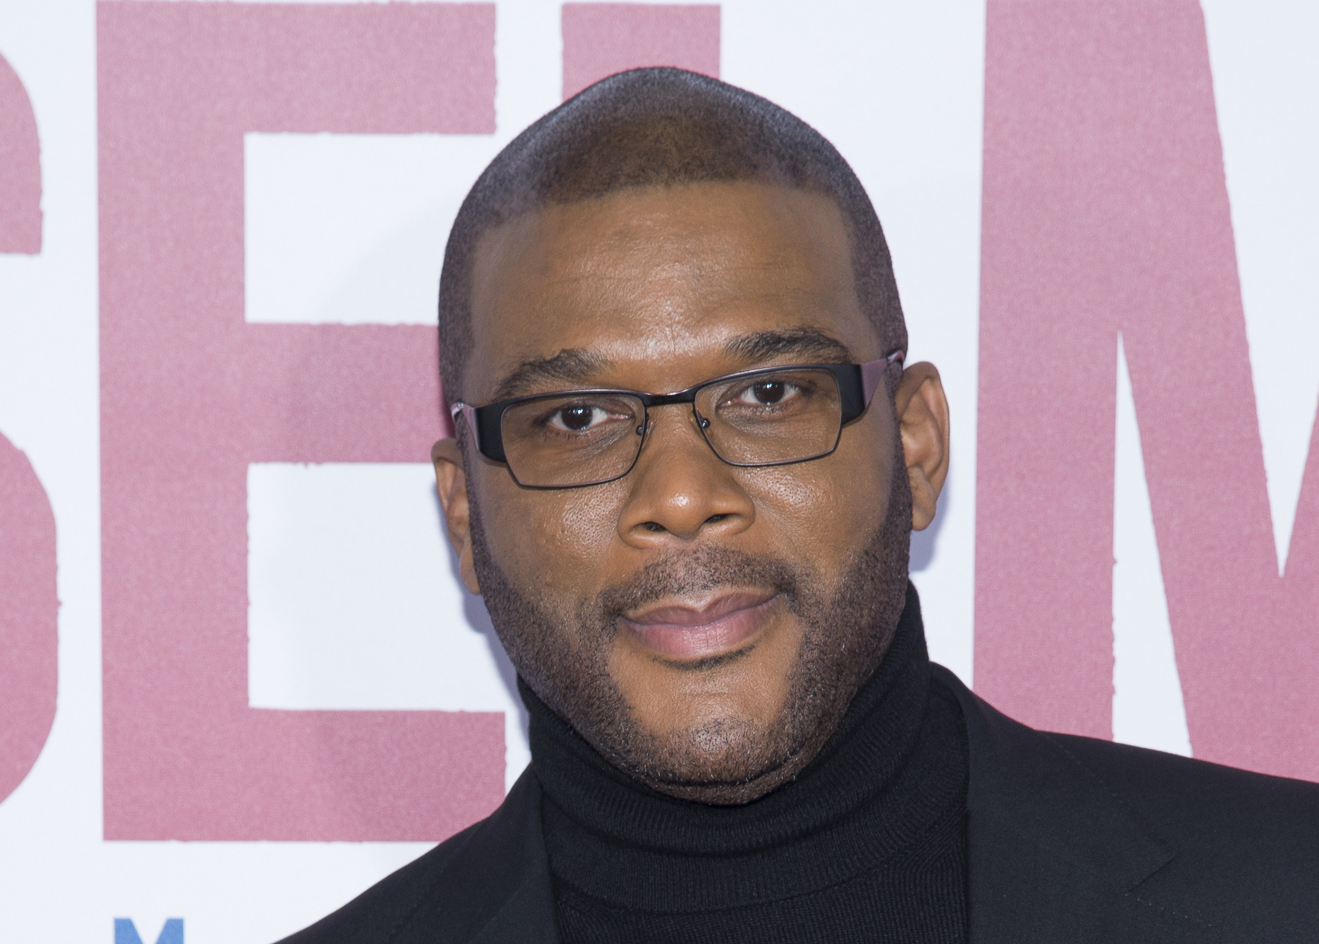 "tyler perry exploits black america essay Florida state university libraries of the stage plays and films of tyler perry ""creating art that feeds the spirit and celebrates the life of black america."